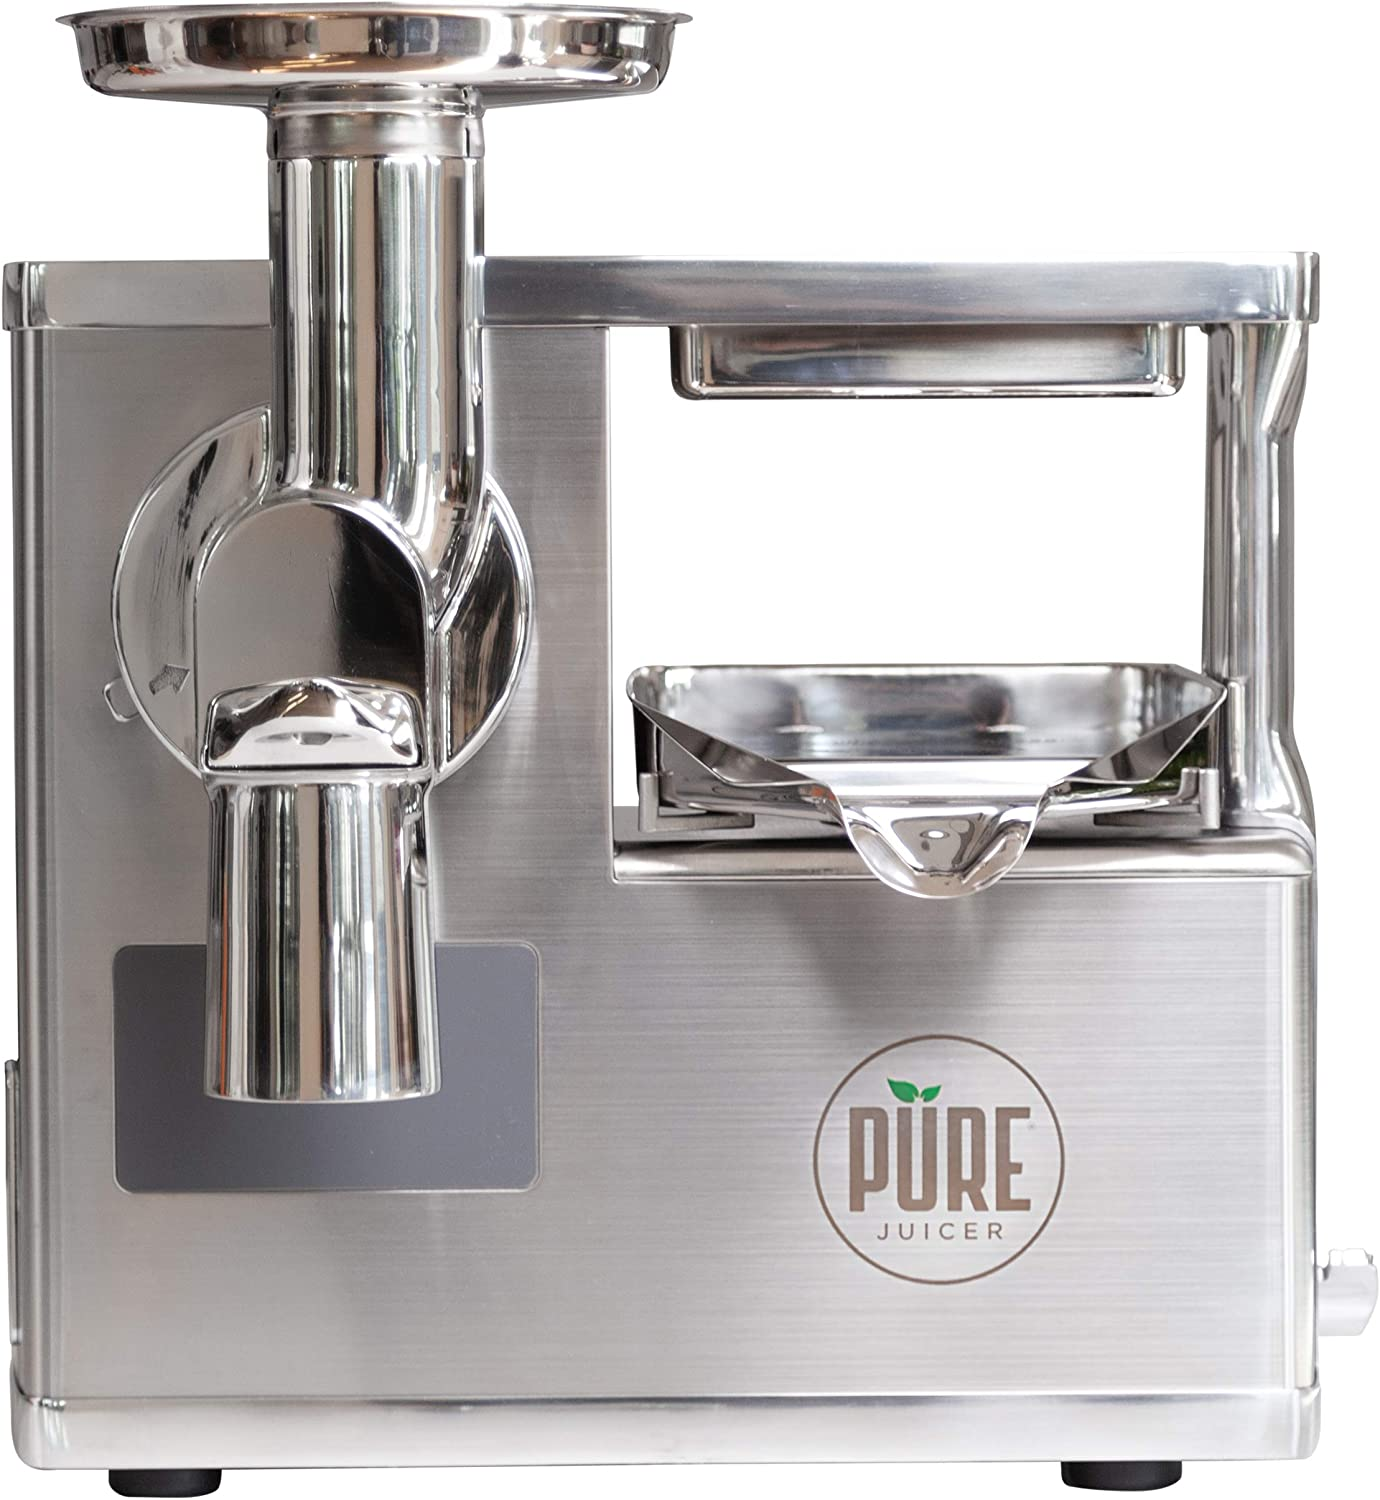 PURE Juicer Two-Stage Masticating Juicer